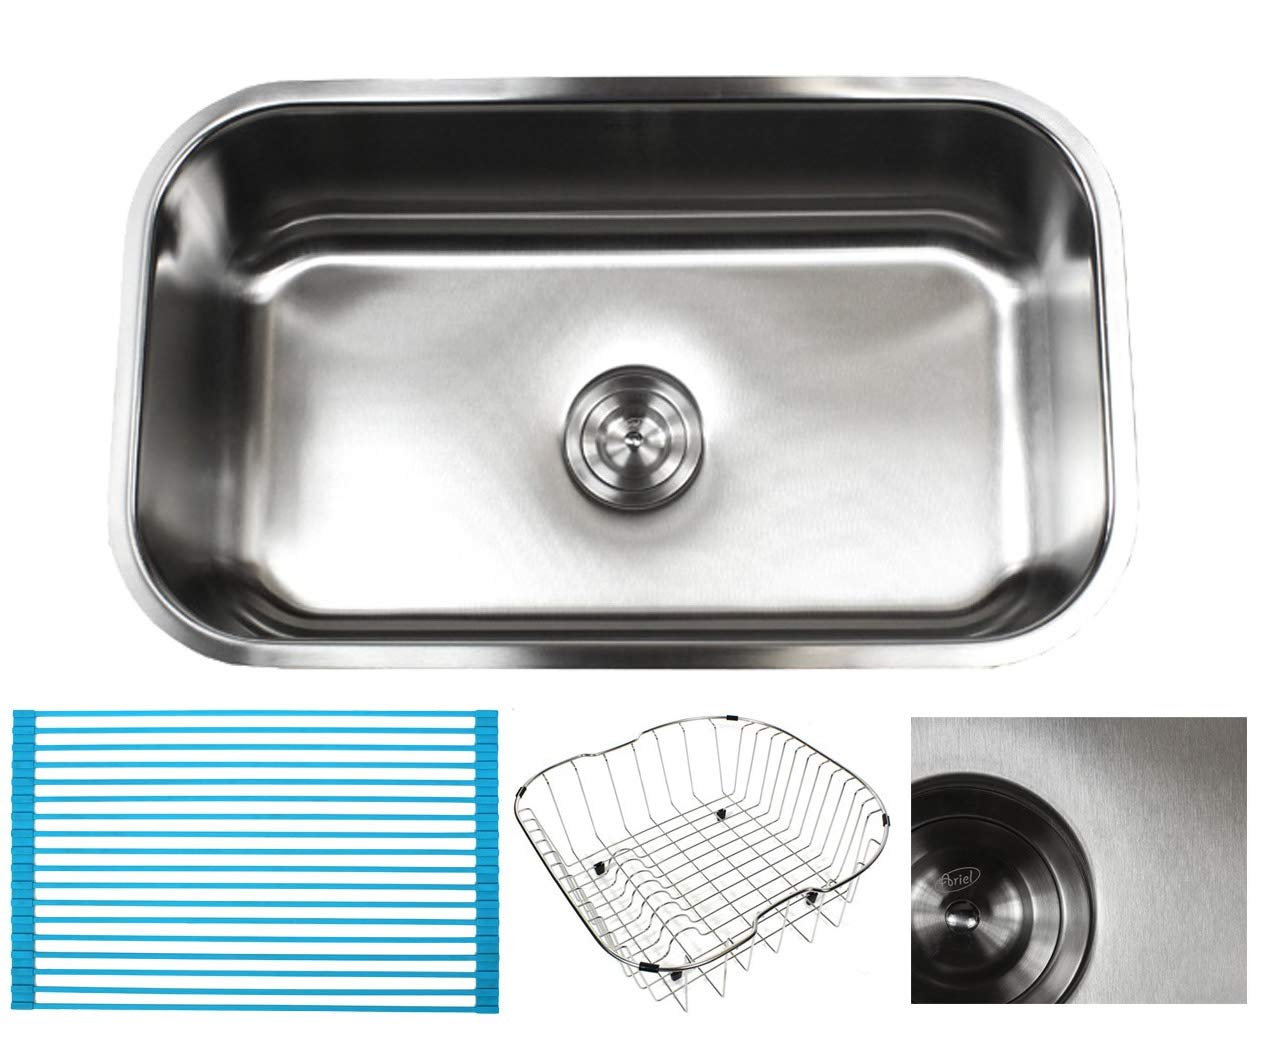 30 Inch Premium 16 Gauge Stainless Steel Undermount Single Bowl Kitchen Sink with FREE ACCESSORIES